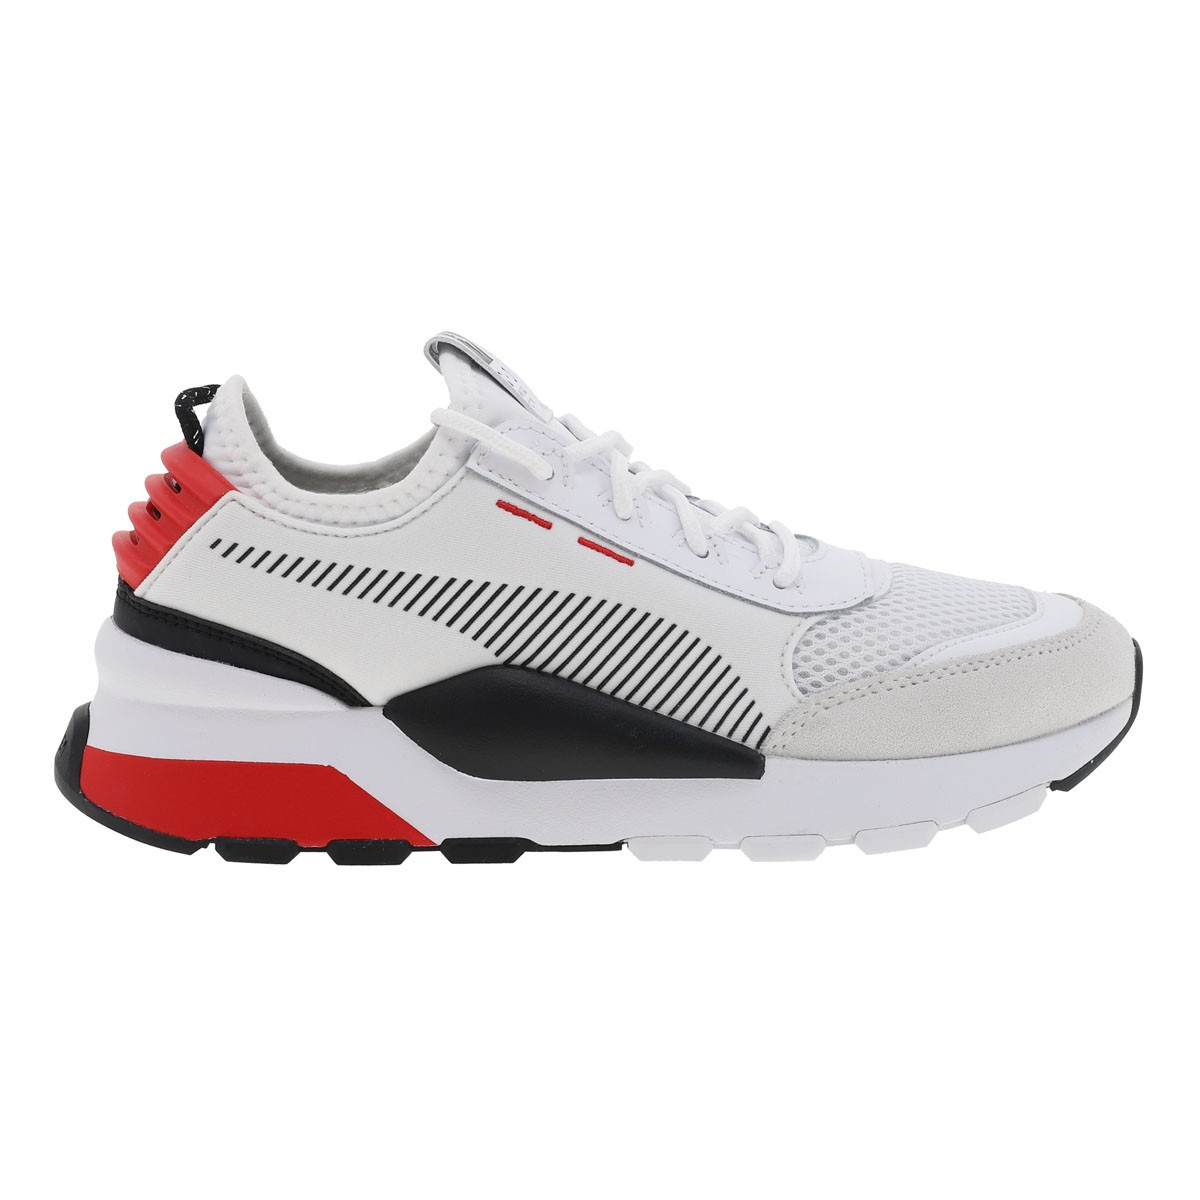 Puma Winter Homme Baskets 0 Toys Rs Blanc hQdCtrxs